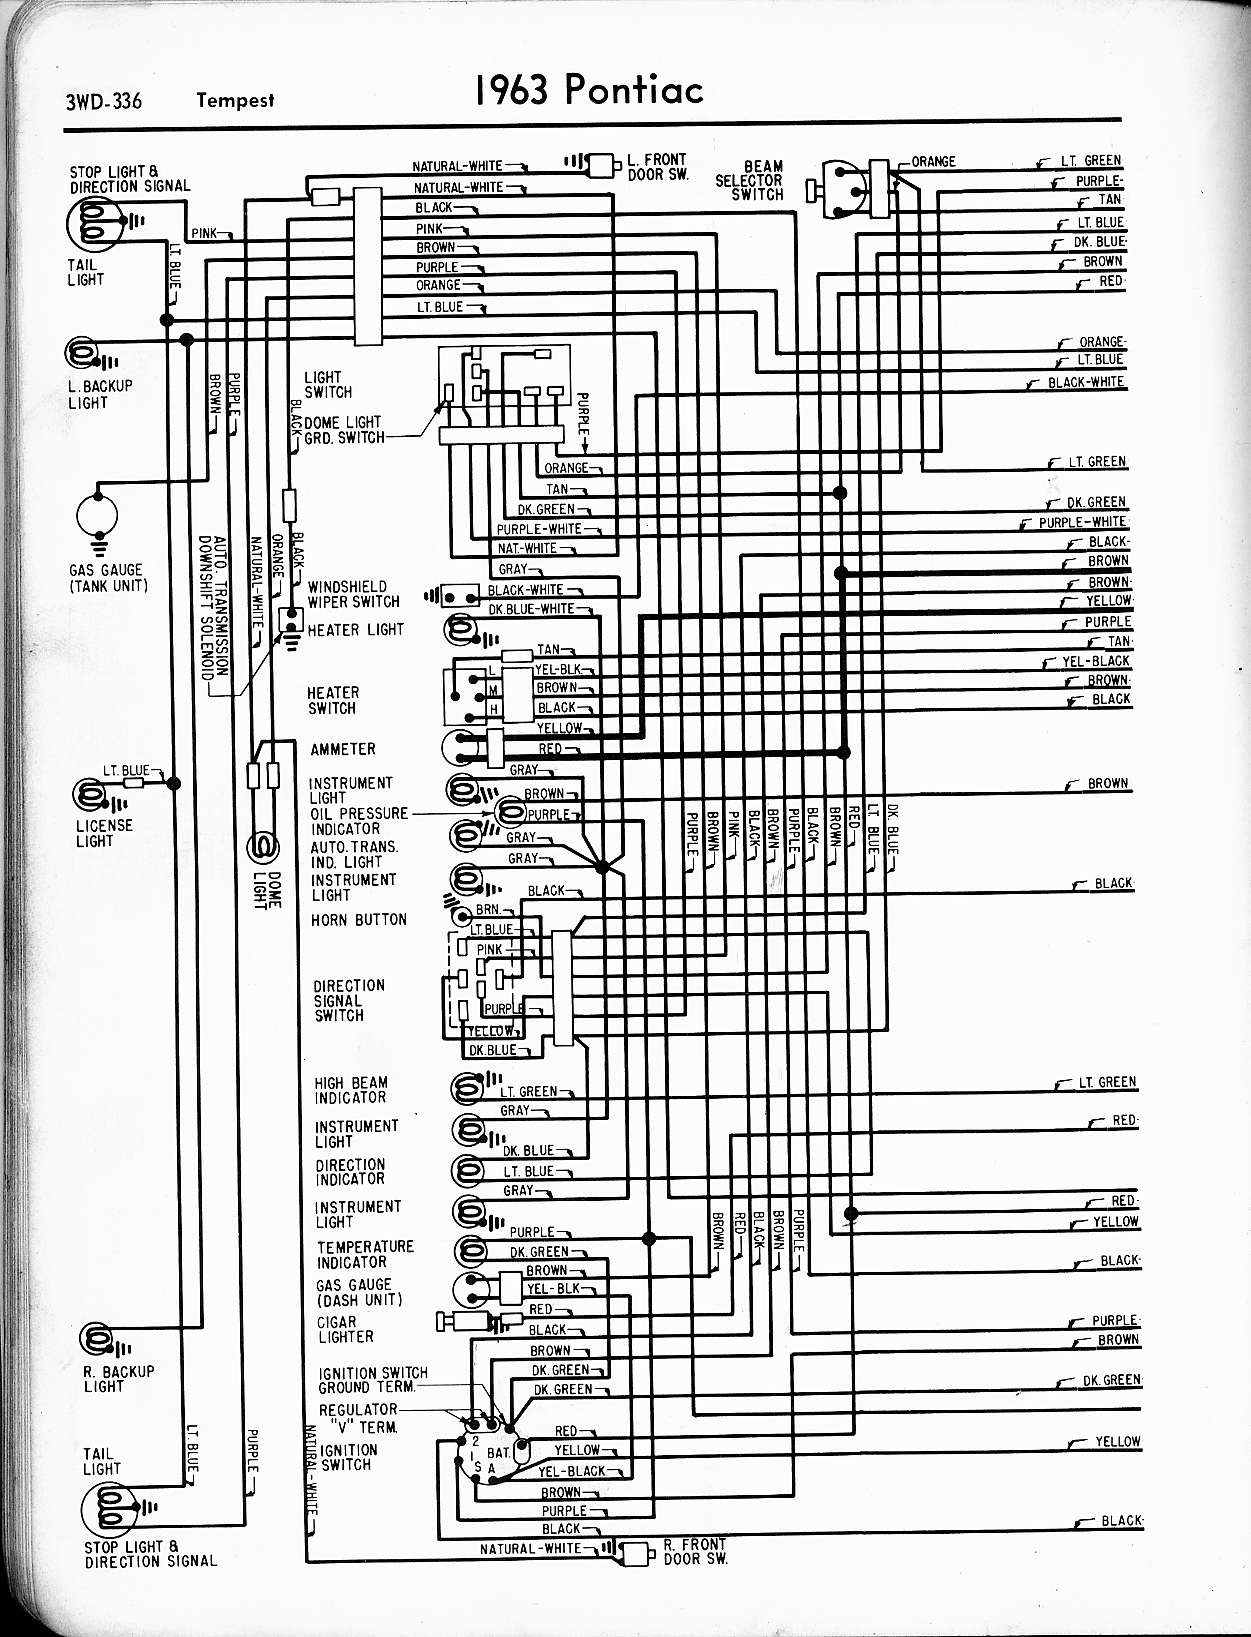 wallace racing wiring diagrams rh wallaceracing com Pontiac Bonneville Wiring-Diagram 2001 Firebird Wiring Diagram